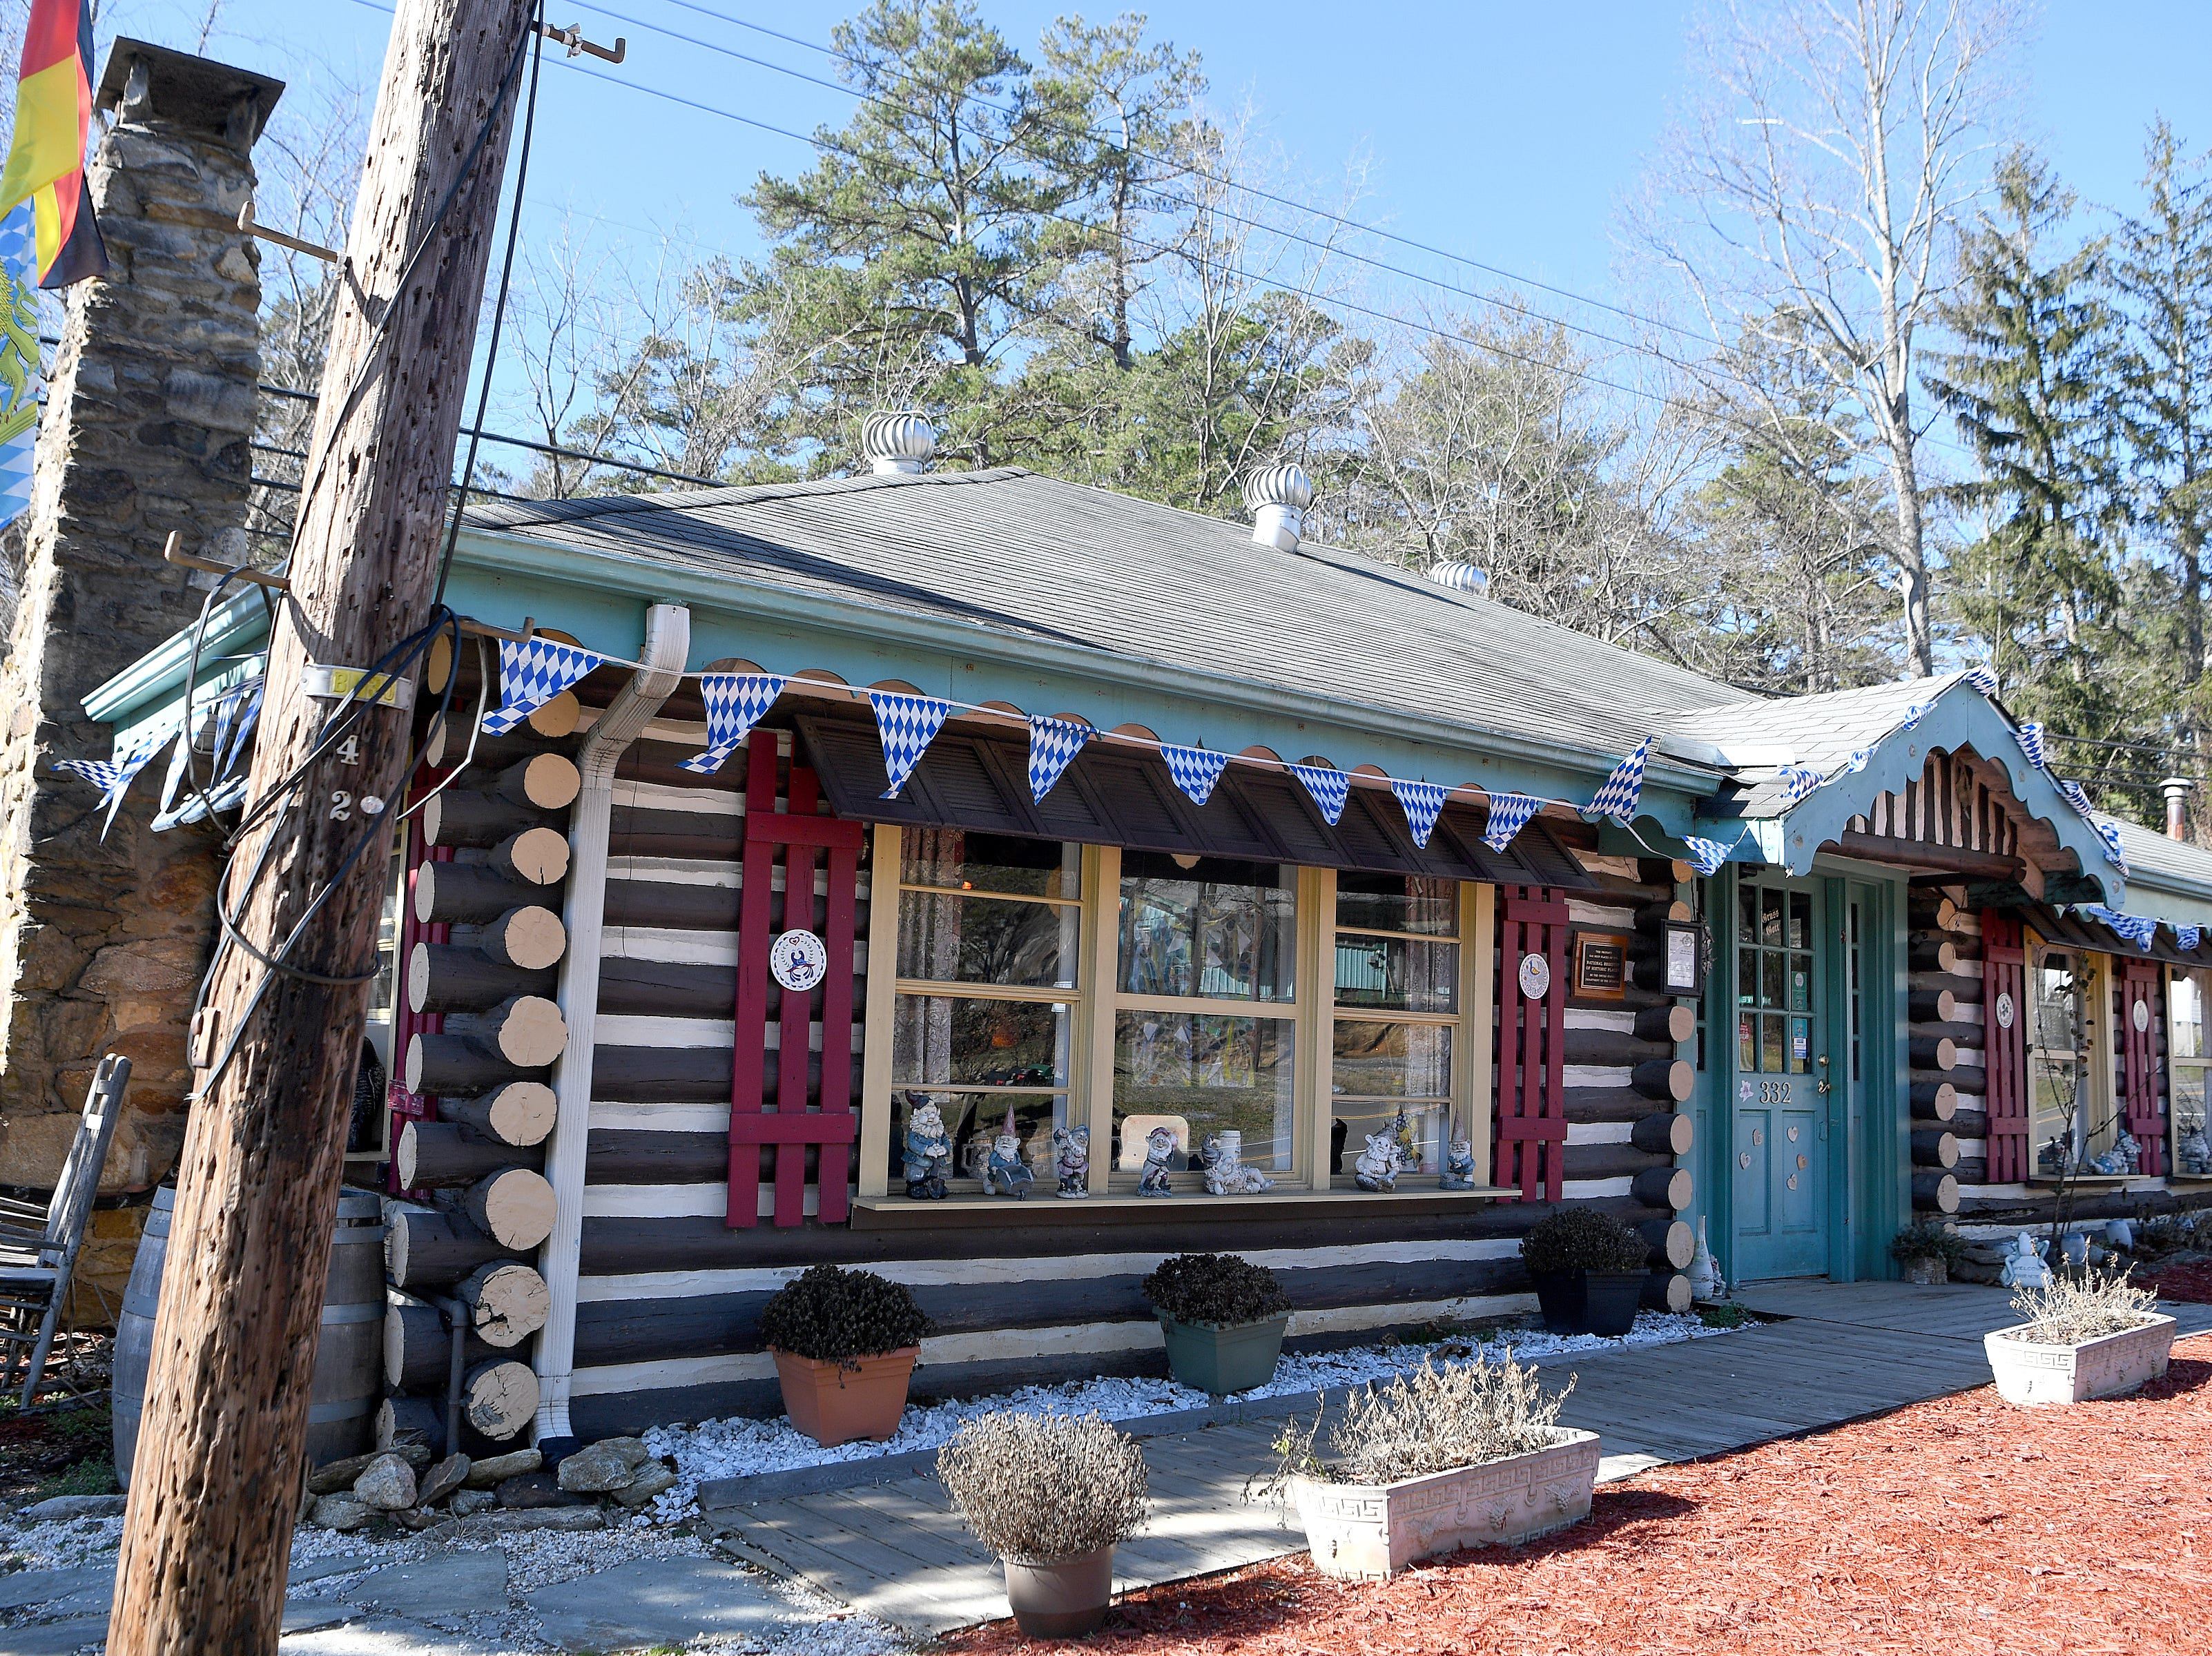 The Bavarian Restaurant & Biergarten is located in an old log cabin that is on the National Register of Historic Places.